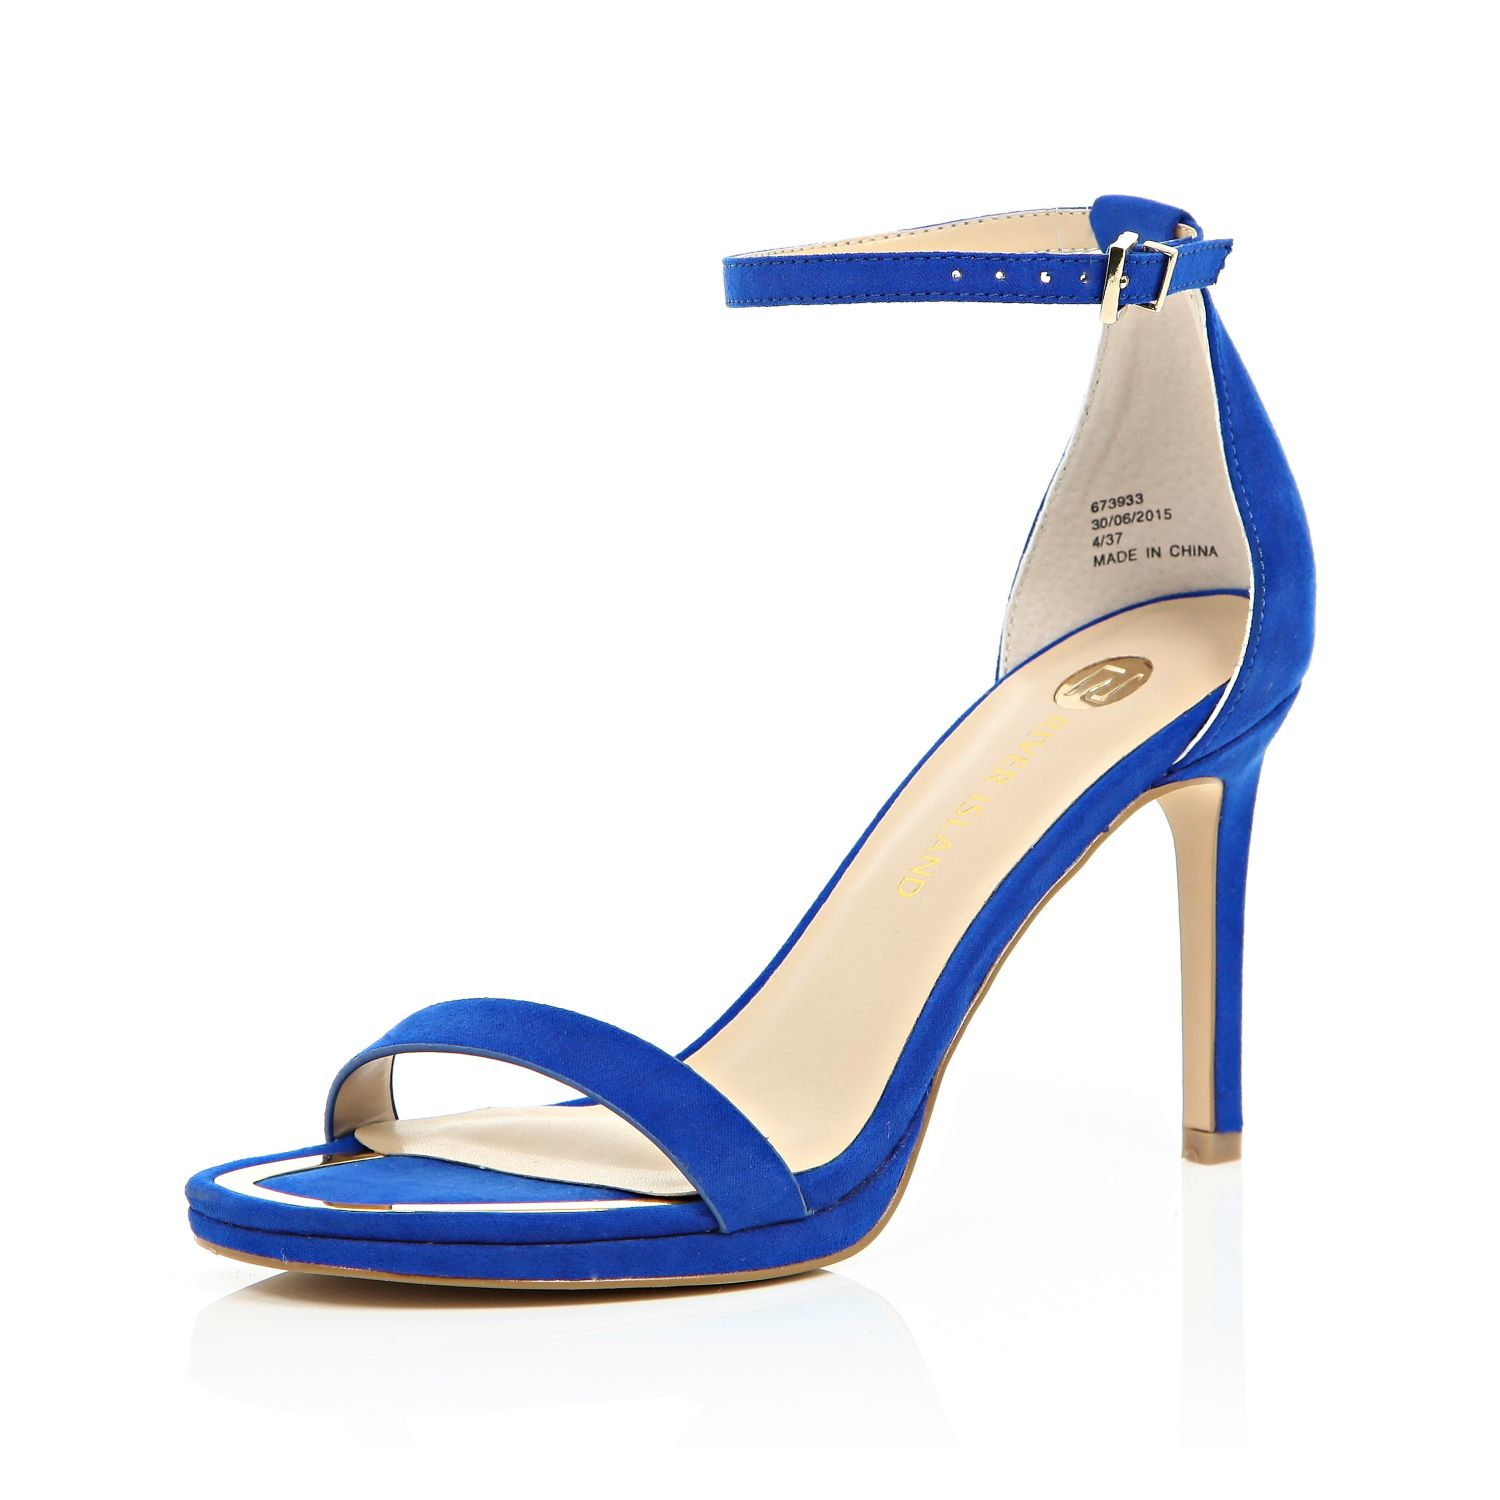 76954a7efdb River Island Blue Barely There Sandal Heels in Blue - Lyst